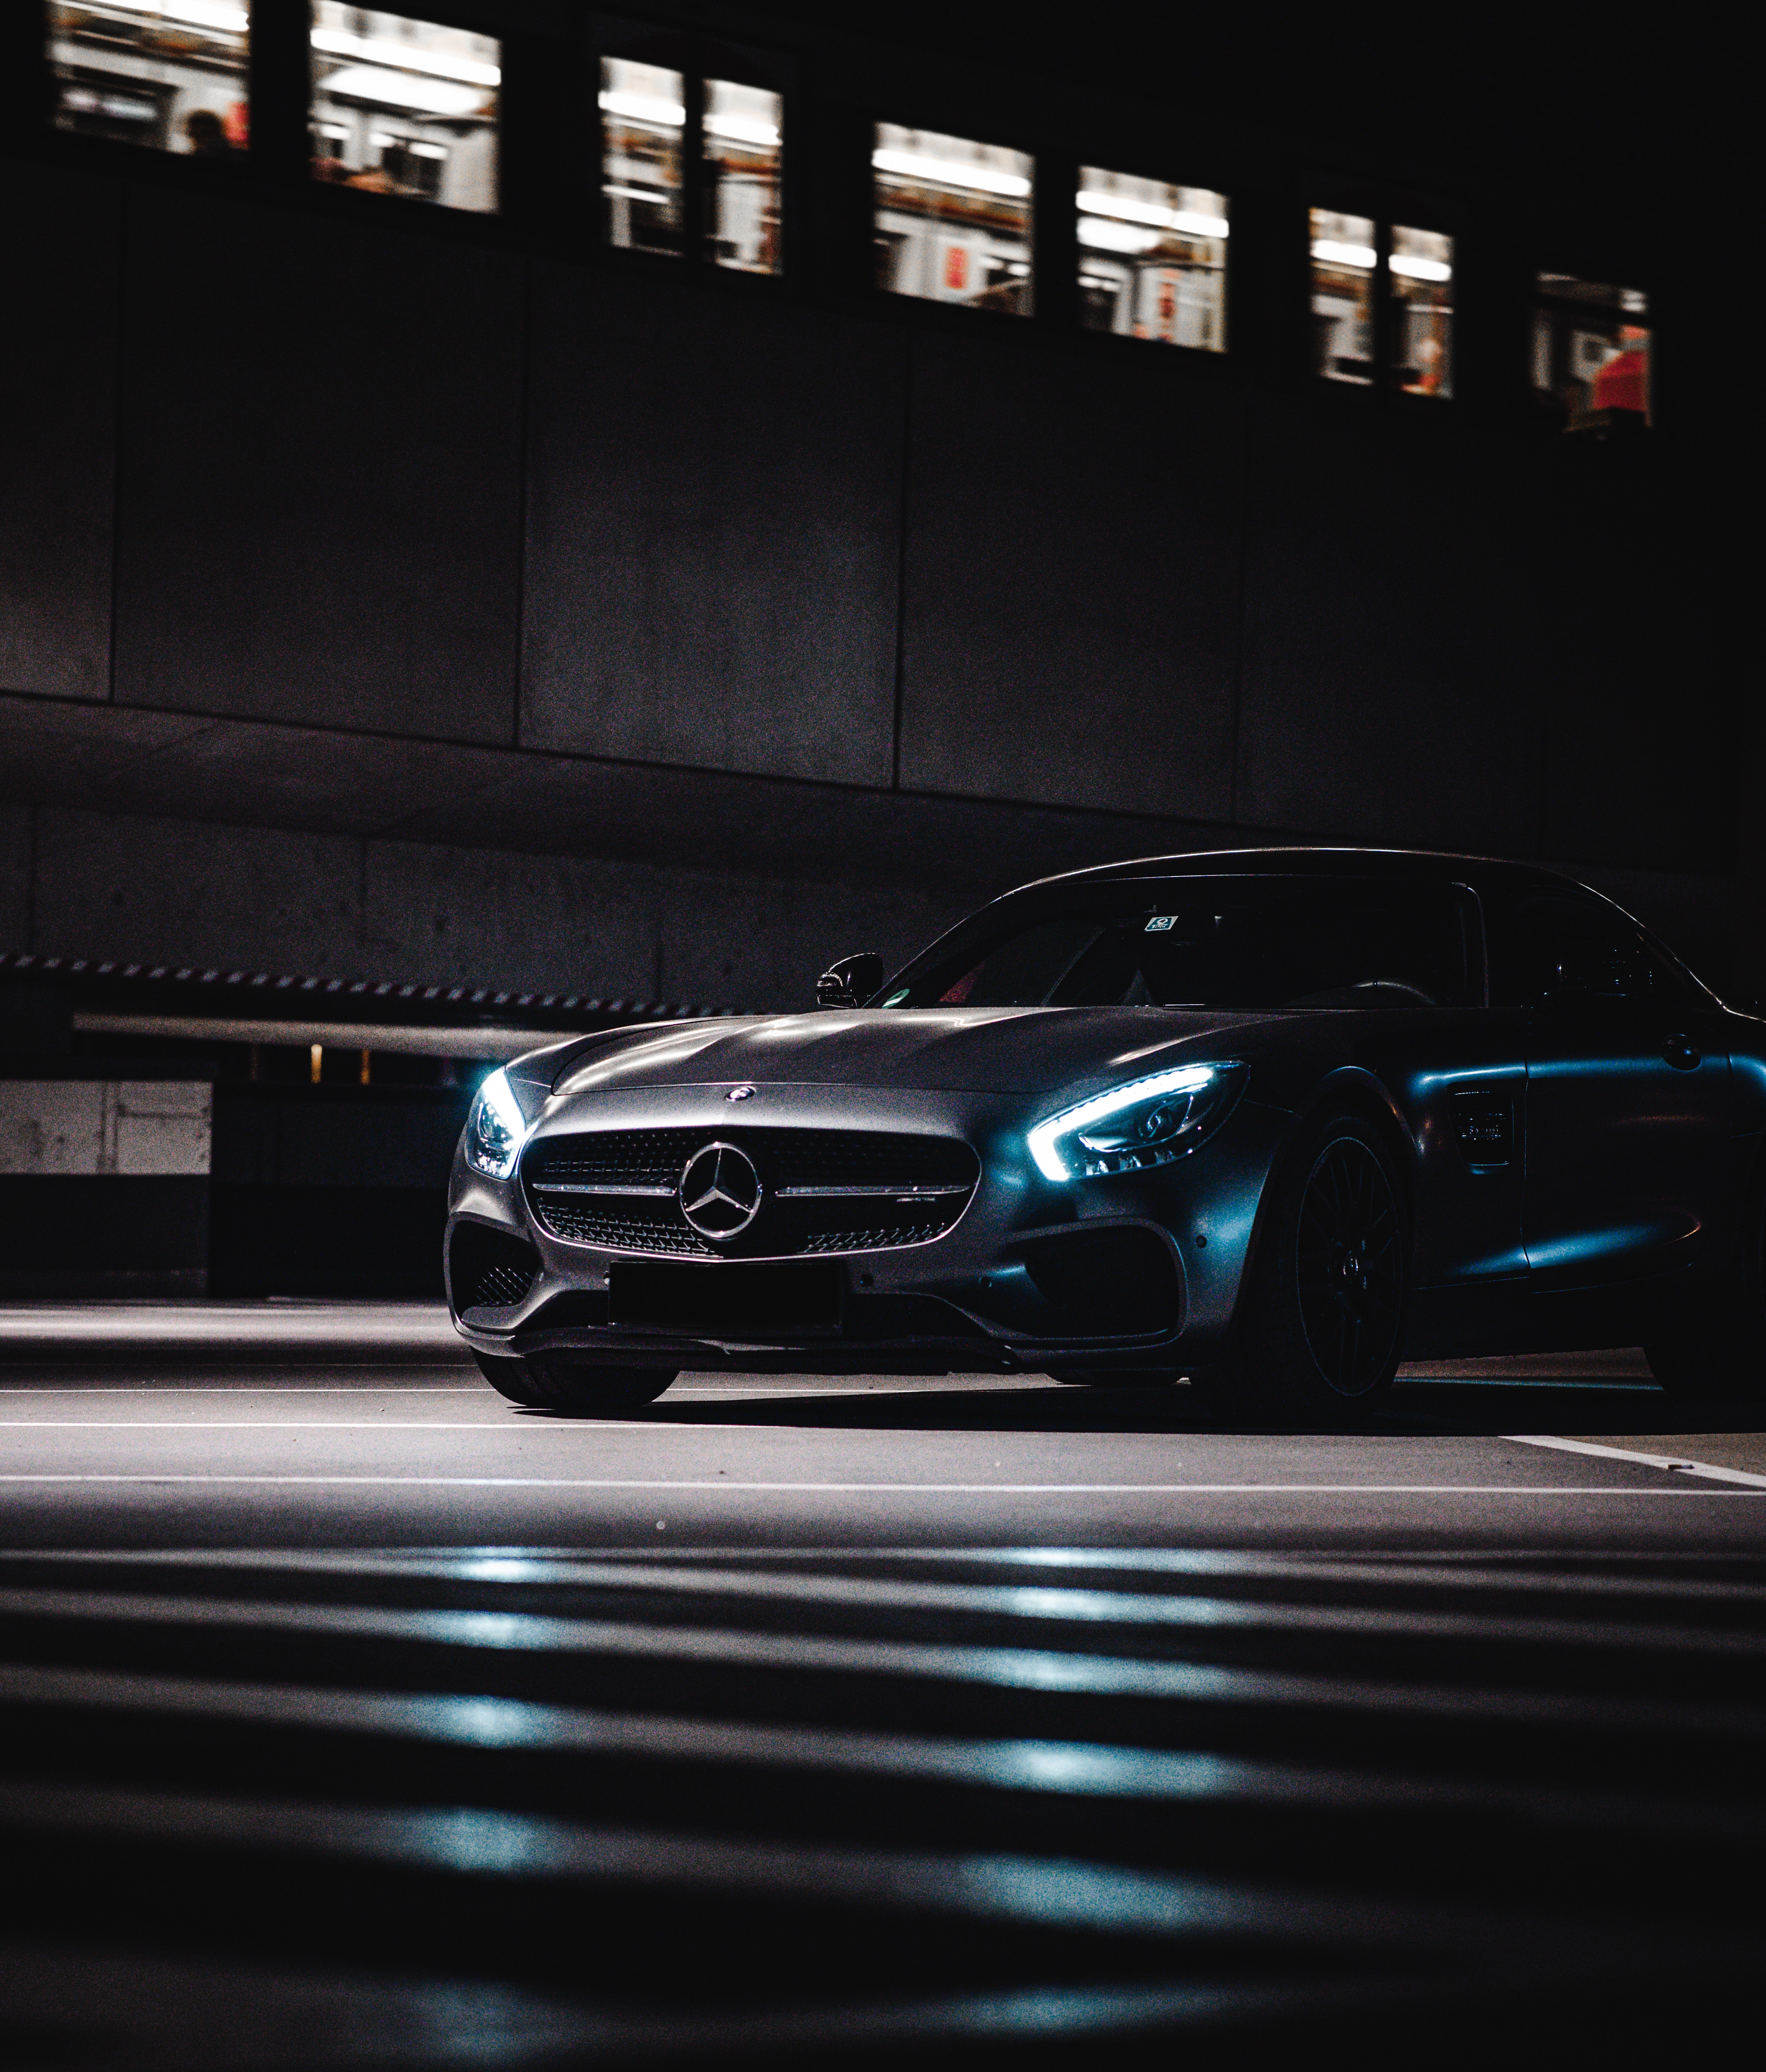 73927 download wallpaper Dark, Cars, Car, Machine, Grey, Mercedes, Supercar screensavers and pictures for free